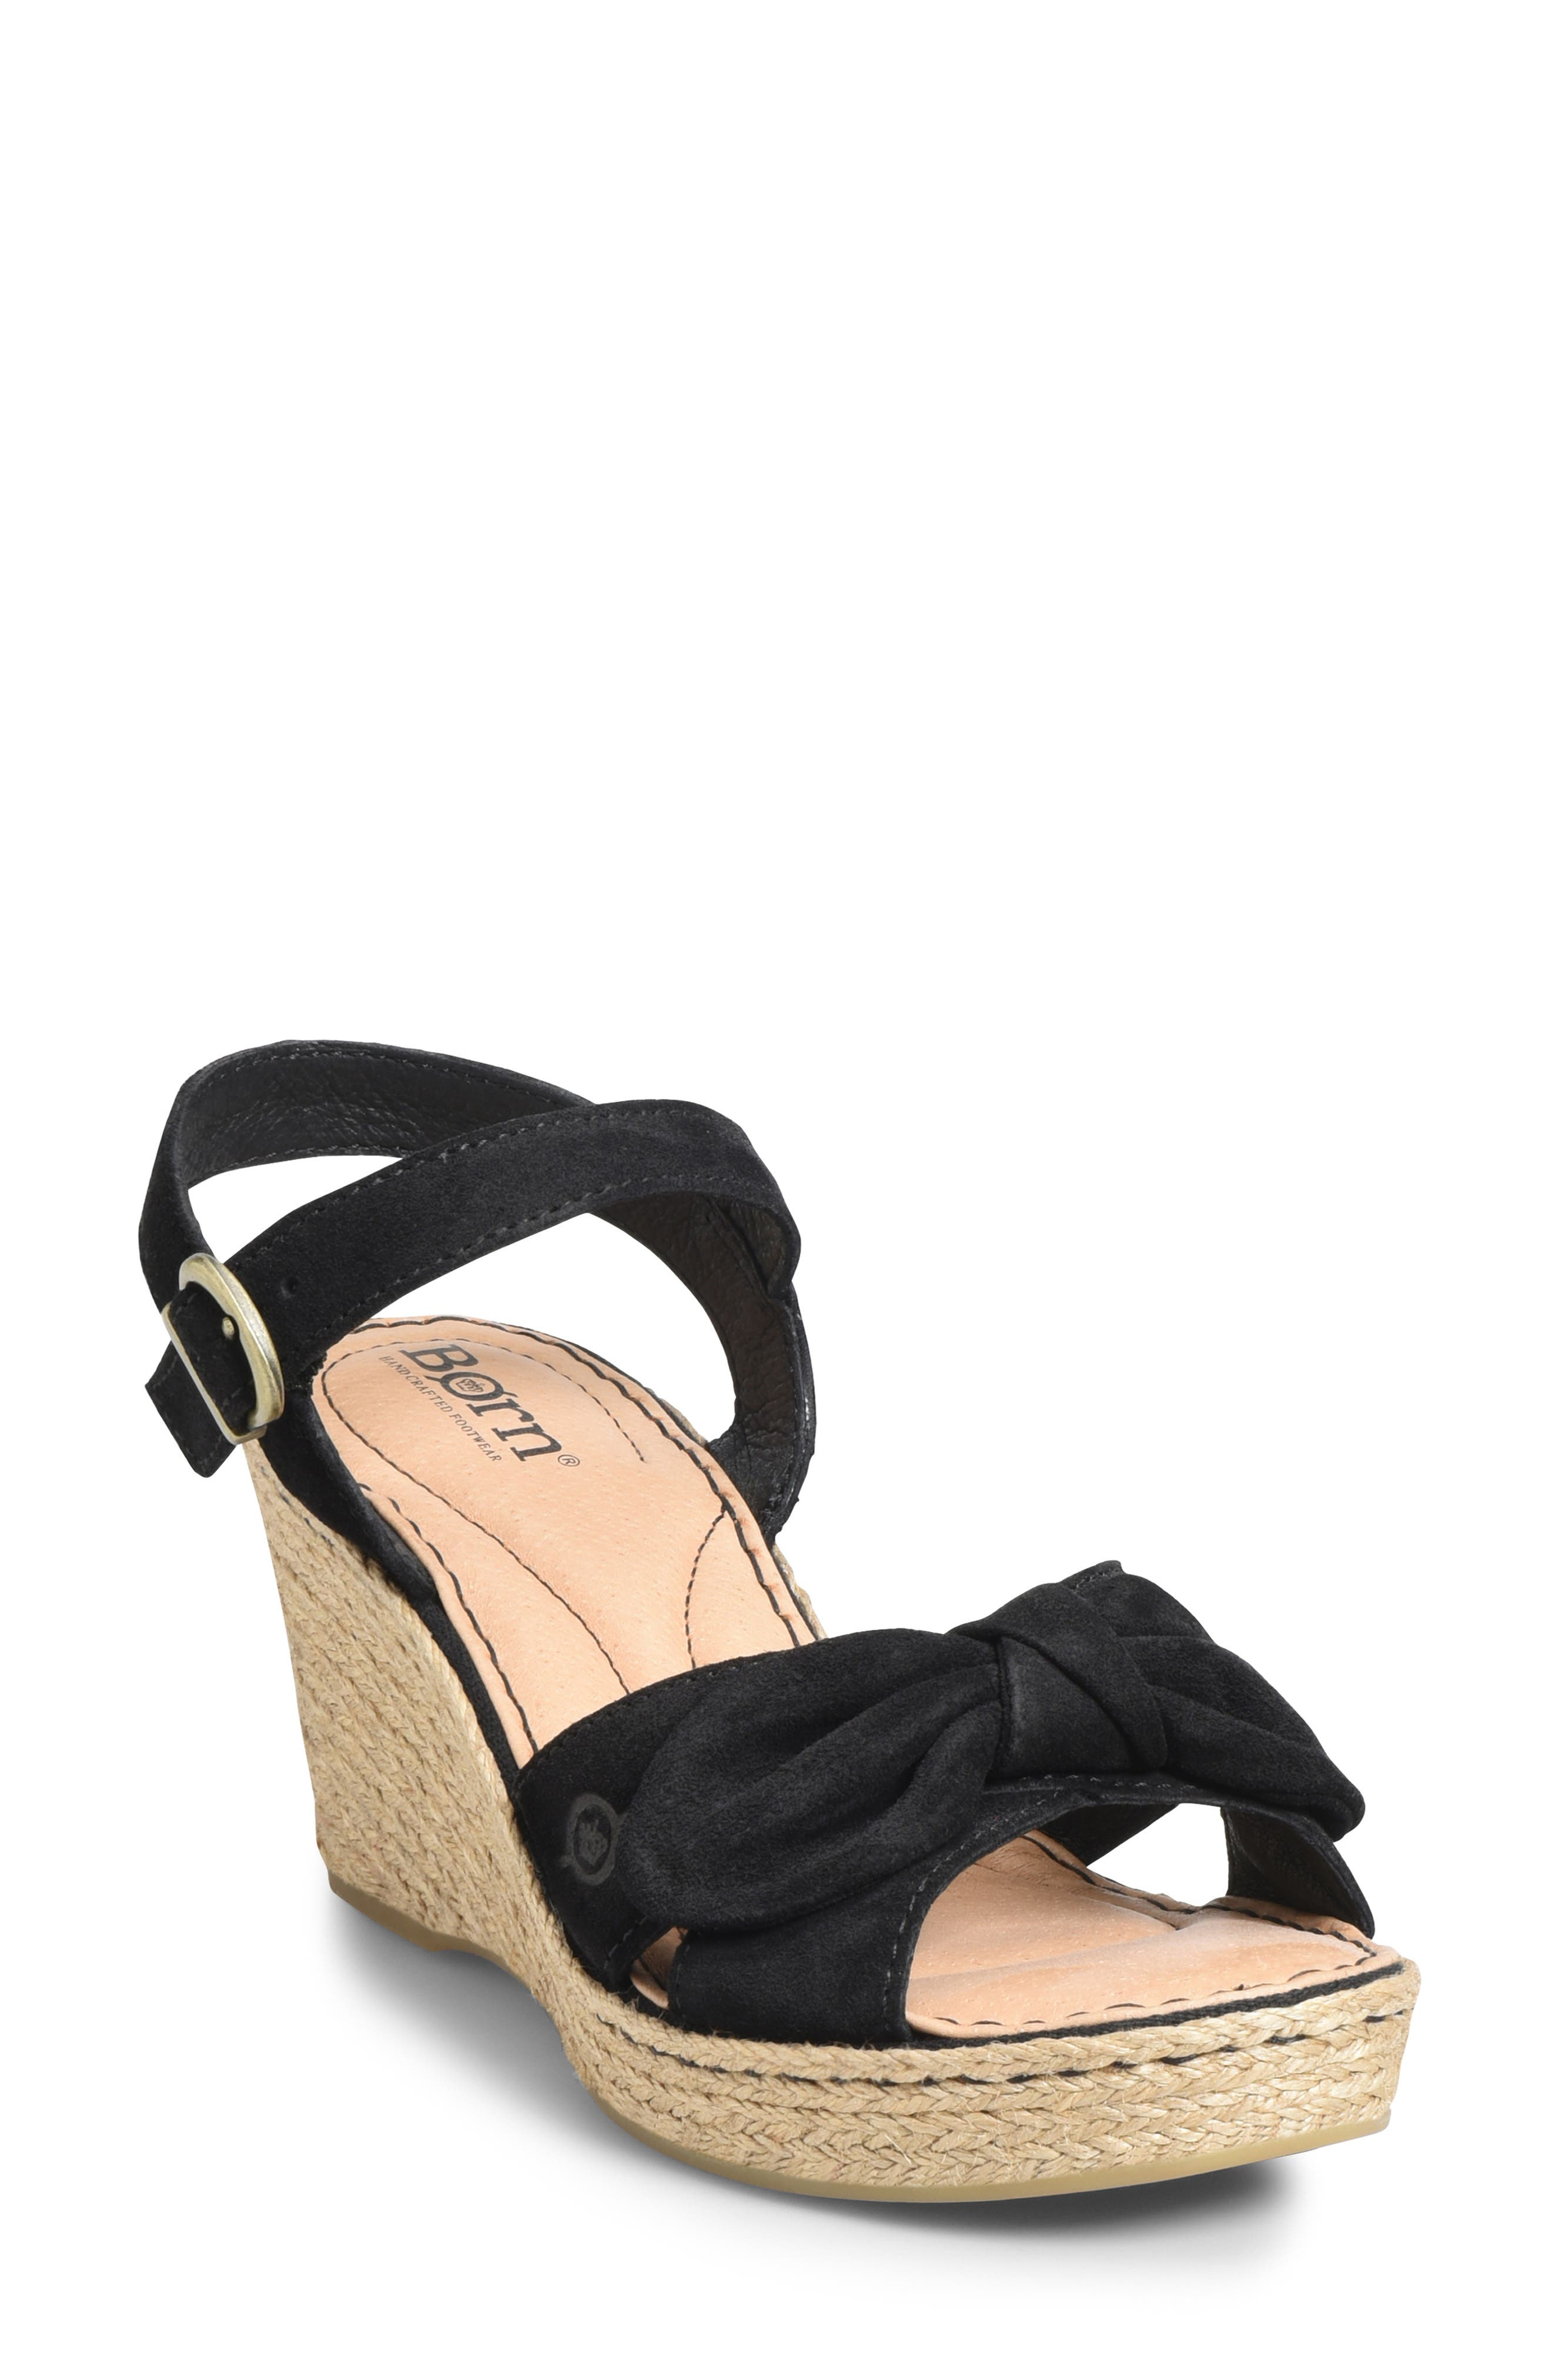 BØRN, Monticello Knotted Wedge Sandal, Main thumbnail 1, color, BLACK SUEDE